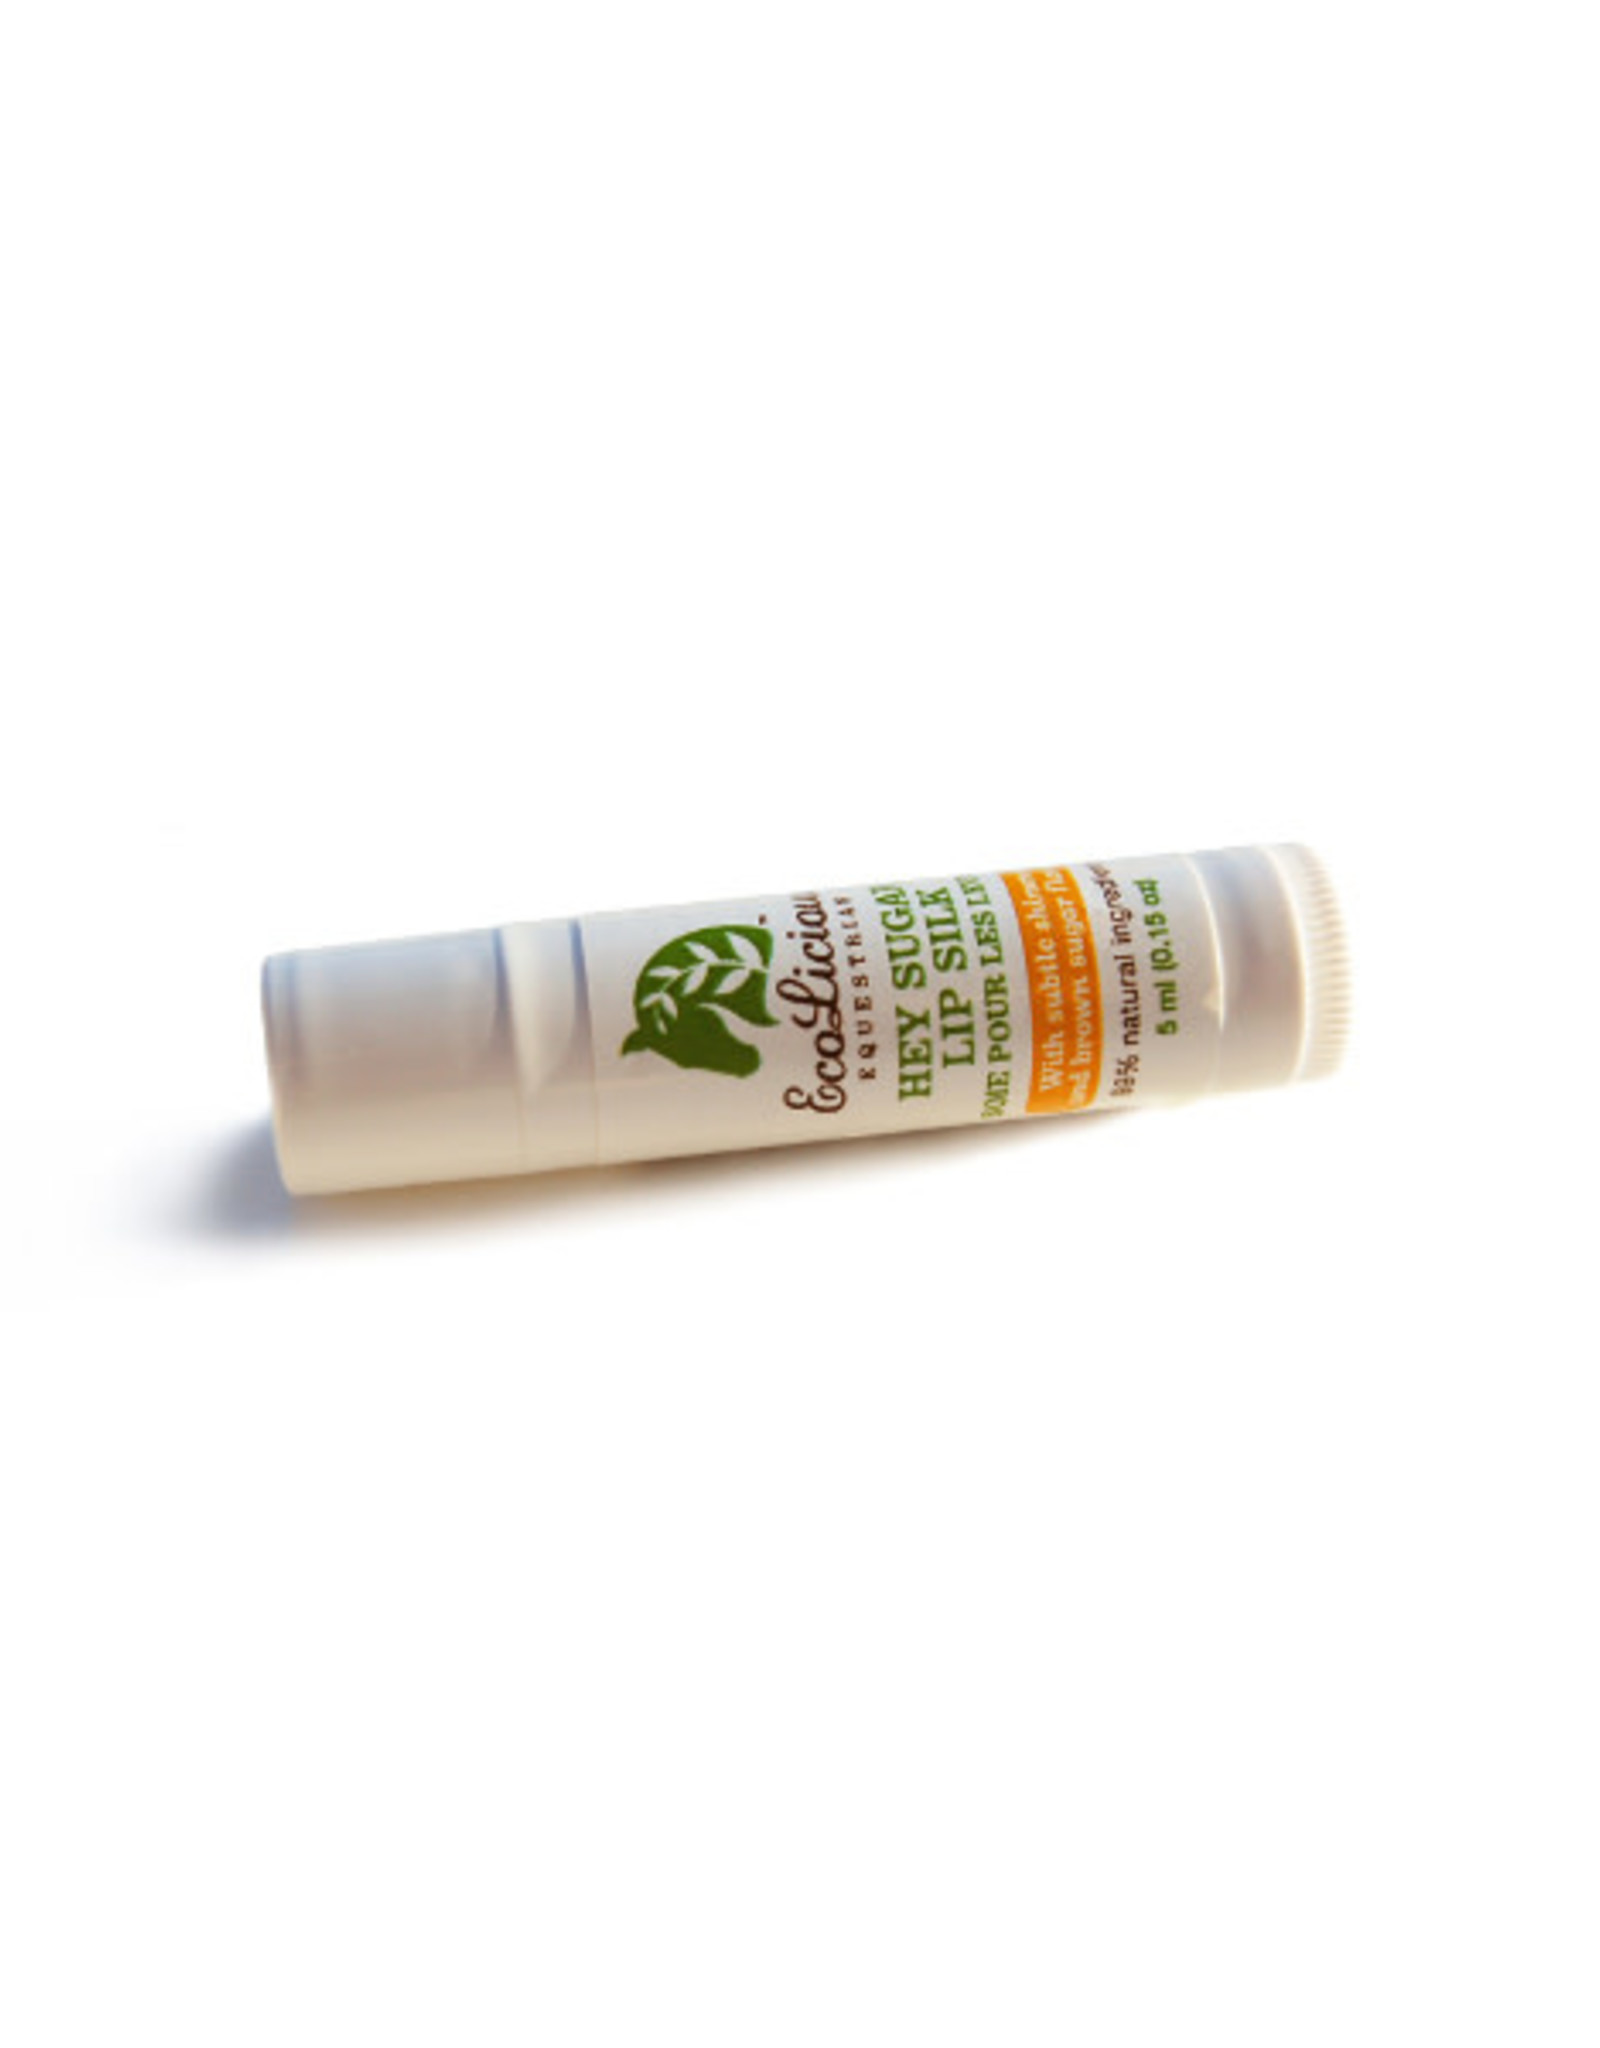 EcoLicious HEY SUGAR LIP BALM